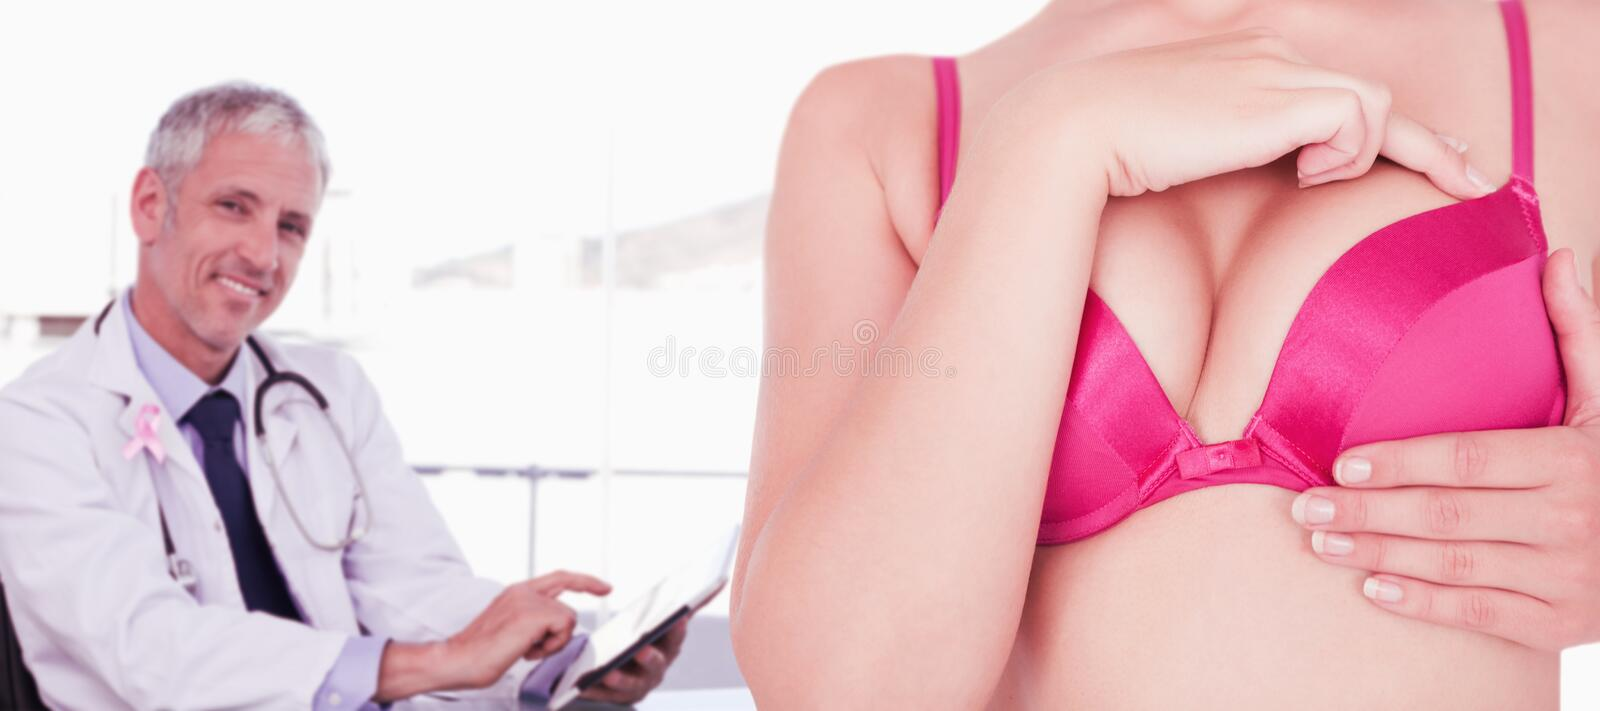 Composite image of mid section of woman in pink bra touching breast for cancer awareness. Mid section of women in pink bra touching breast for cancer awareness stock images